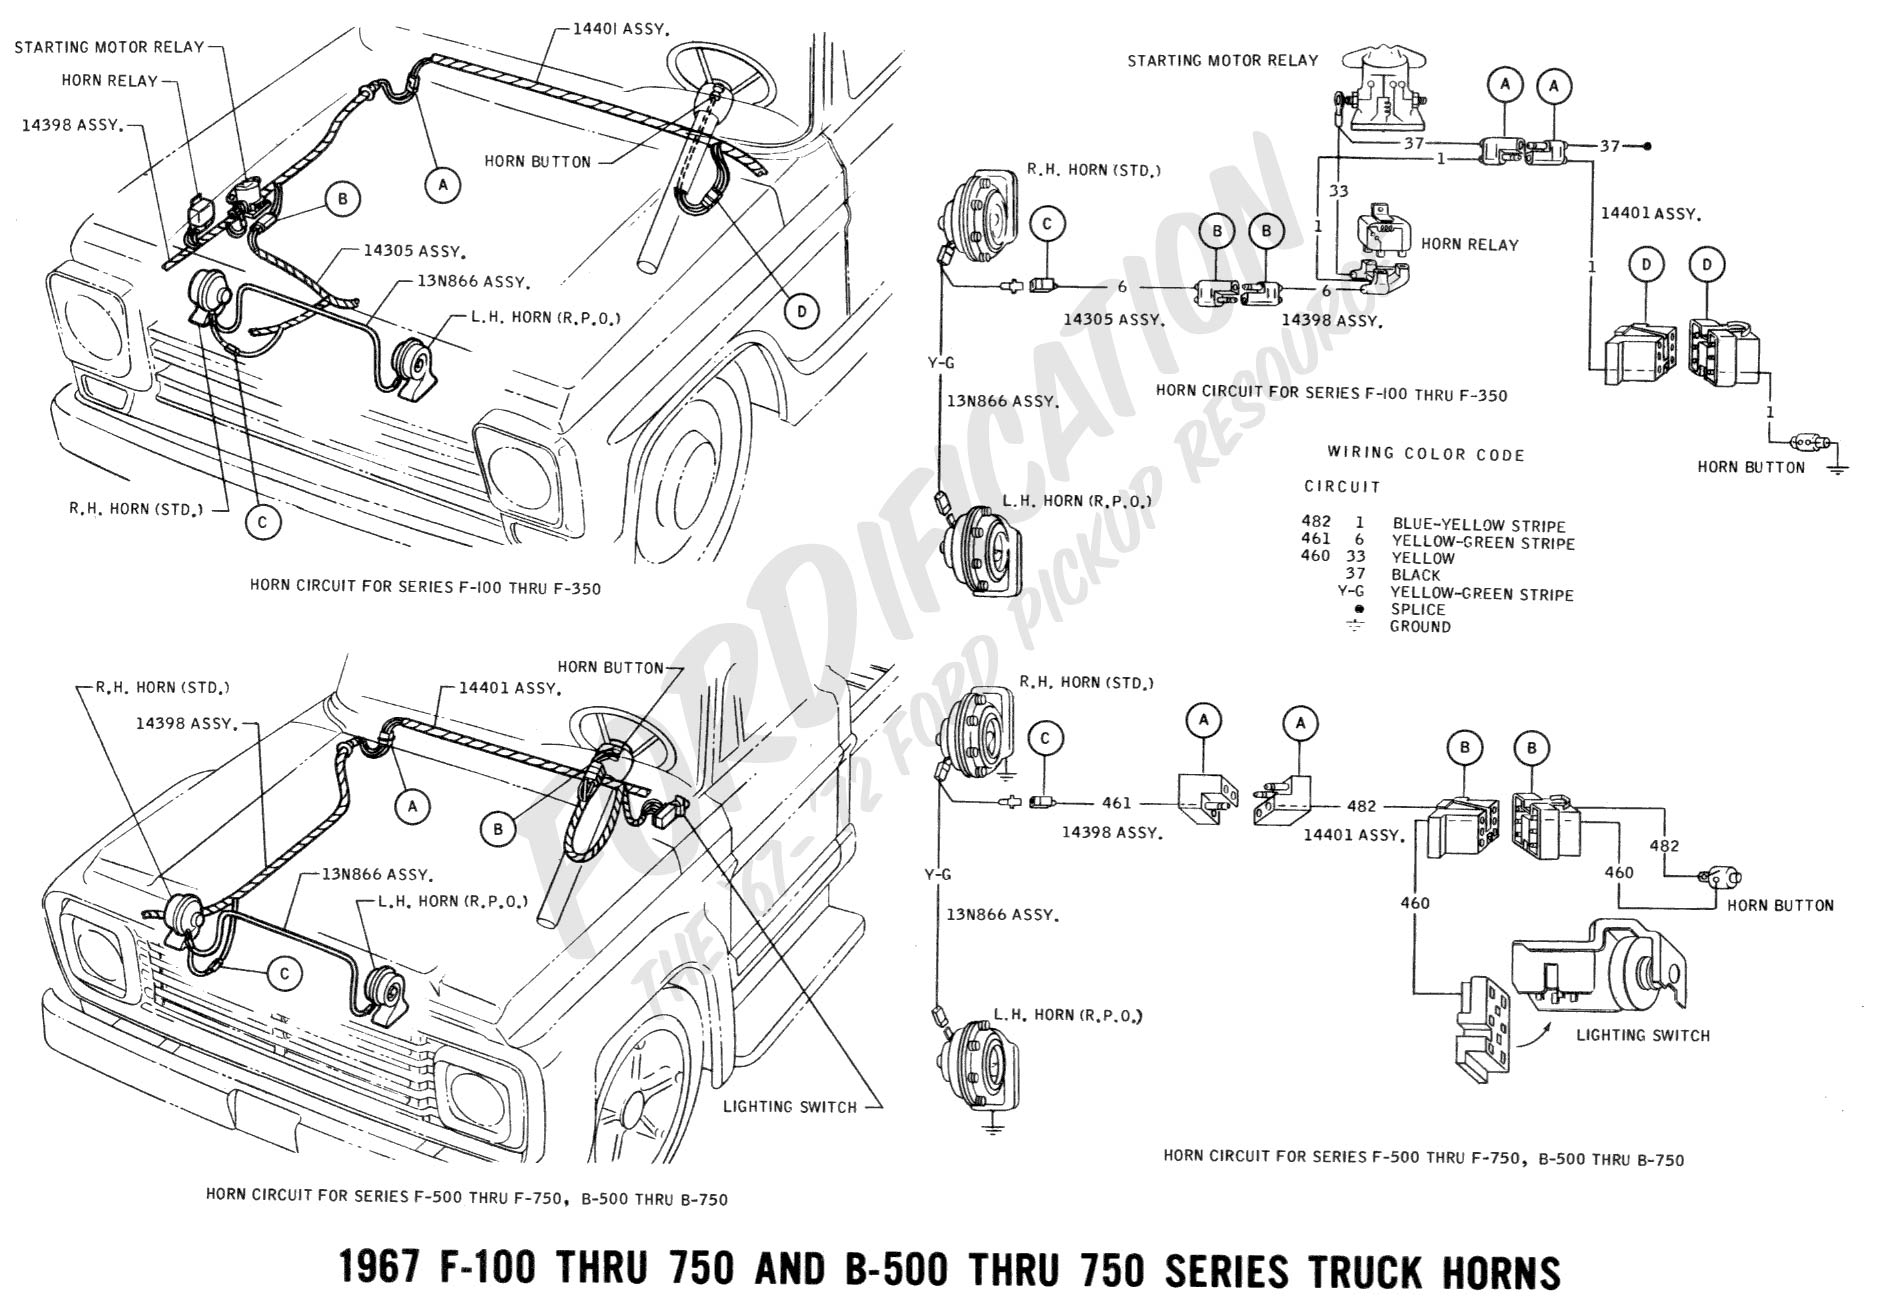 ford turn signal wiring diagram wiring diagramford truck technical drawings and schematics section h wiring1967 f 100 thru f 750 \\u0026